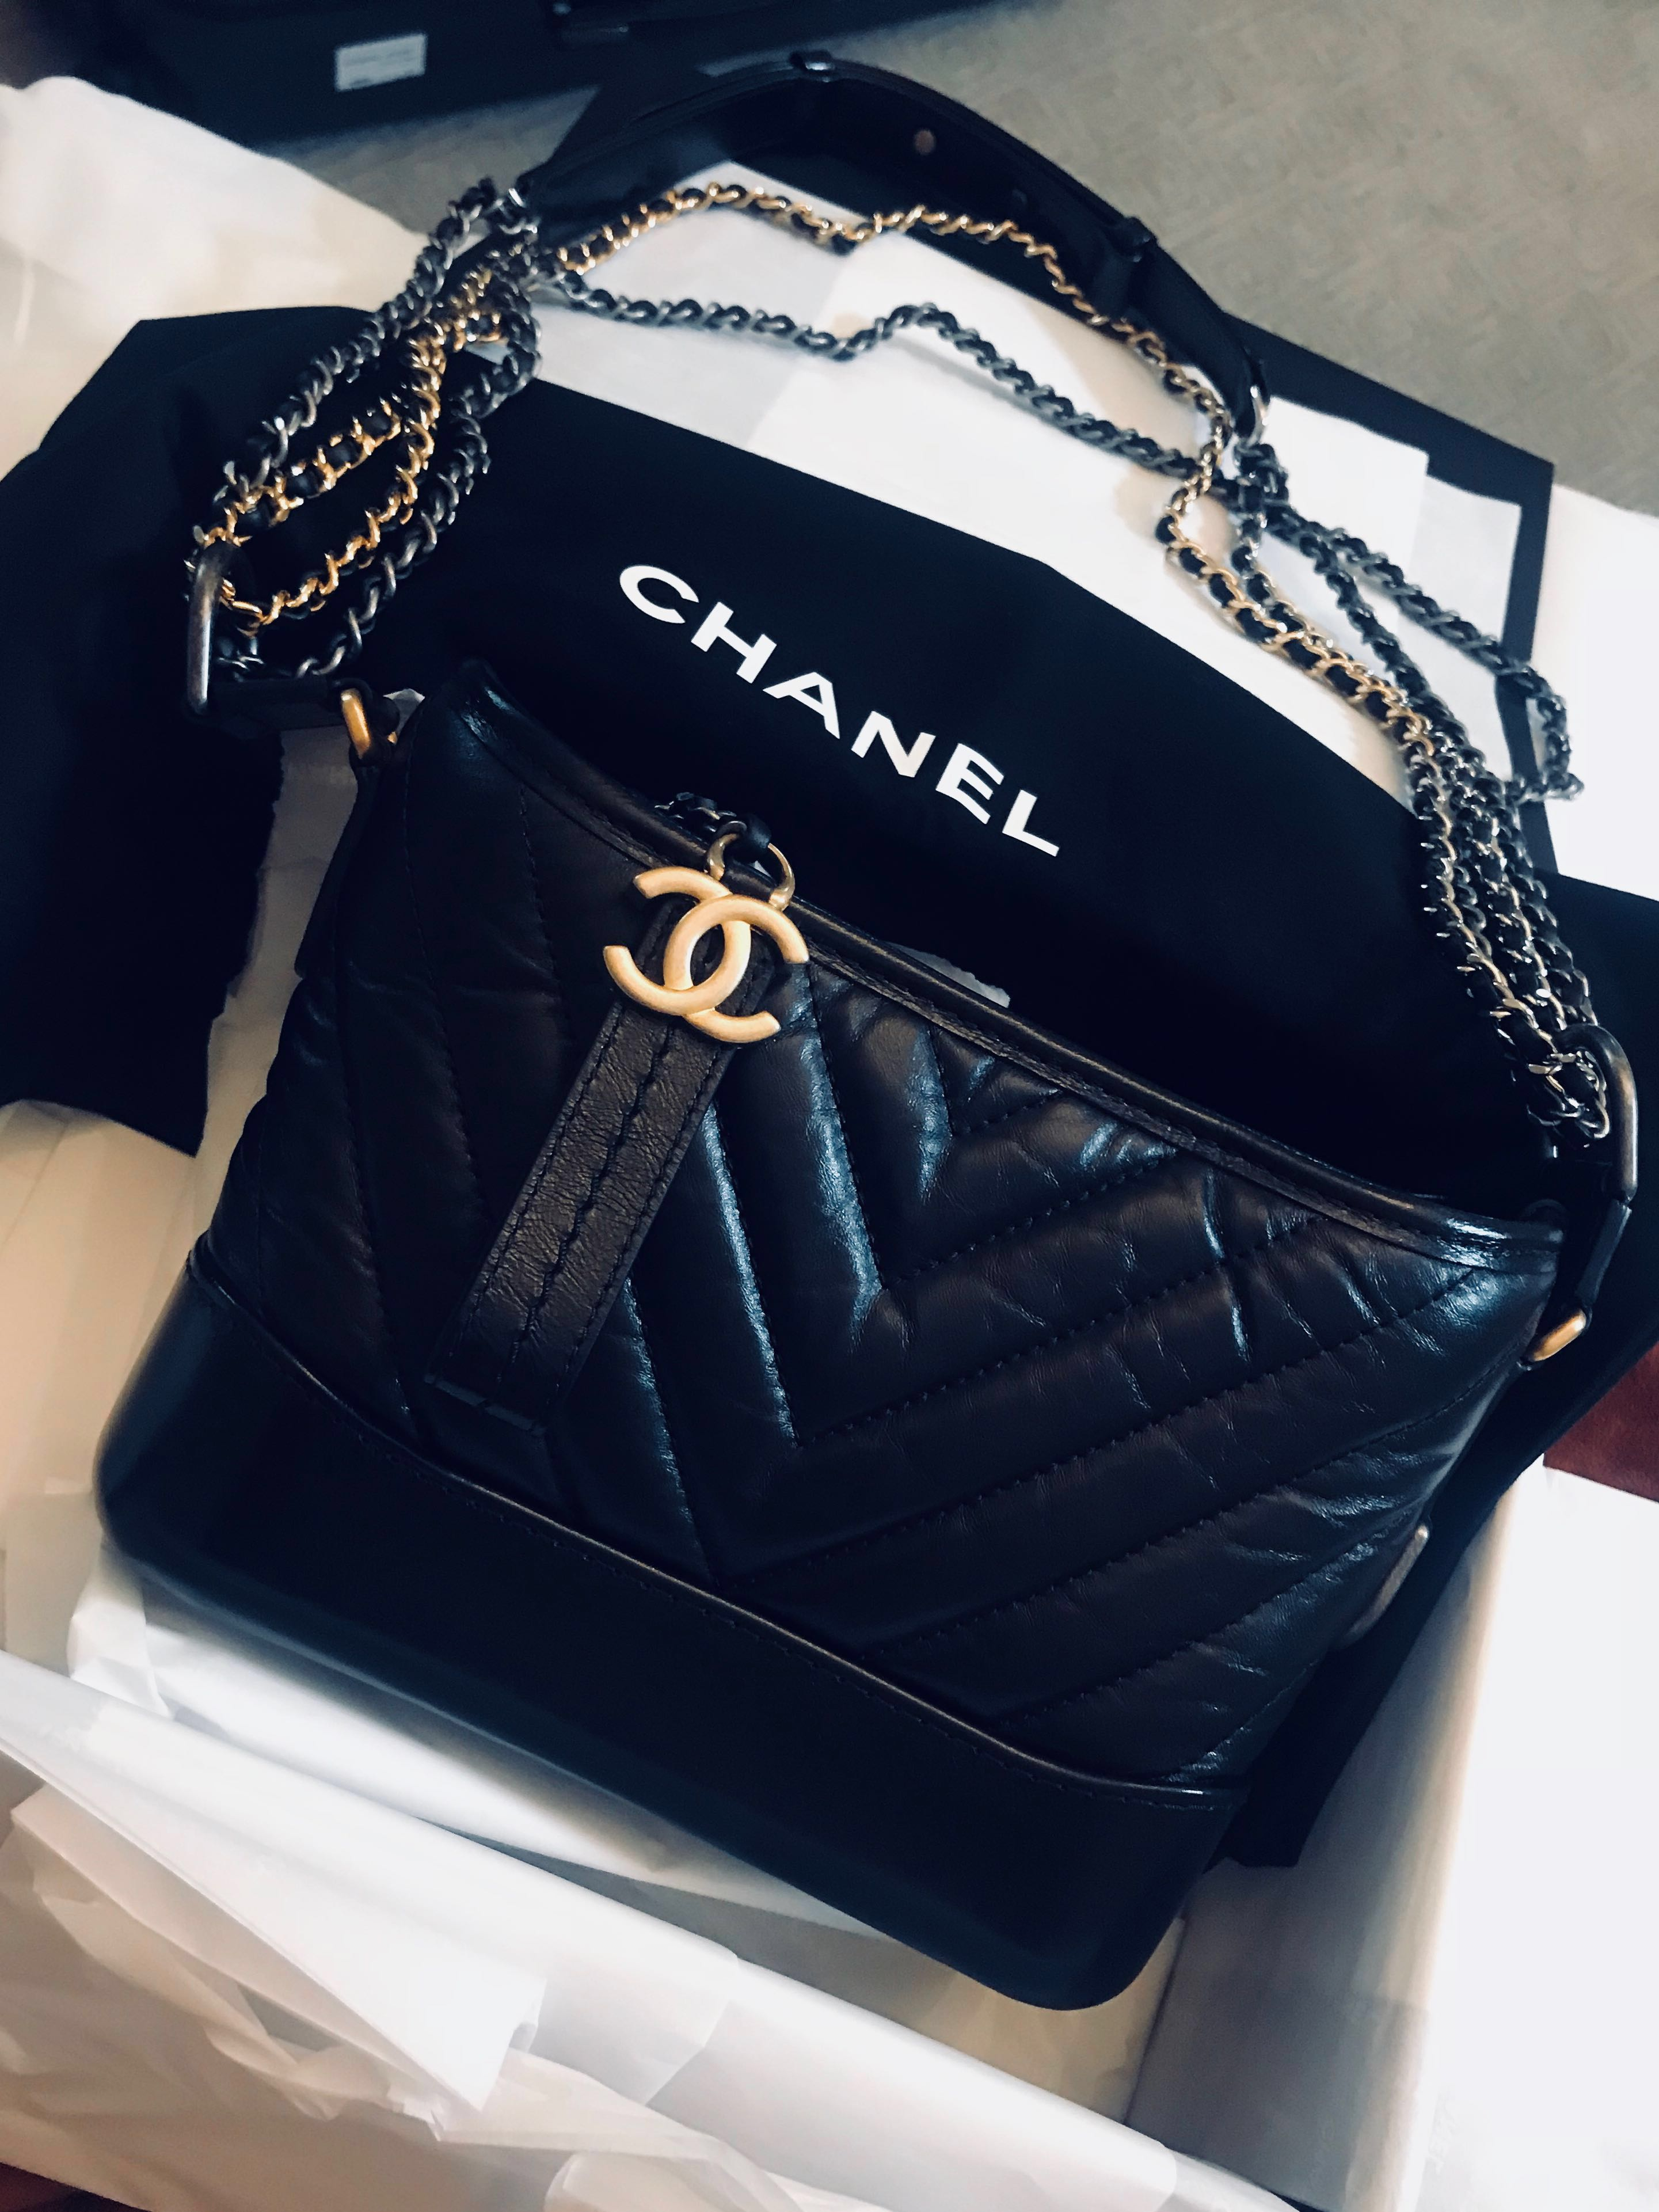 8ce0916356 📌Fast deal $4950 Chanel Gabrielle small bag, Women's Fashion, Bags &  Wallets, Handbags on Carousell